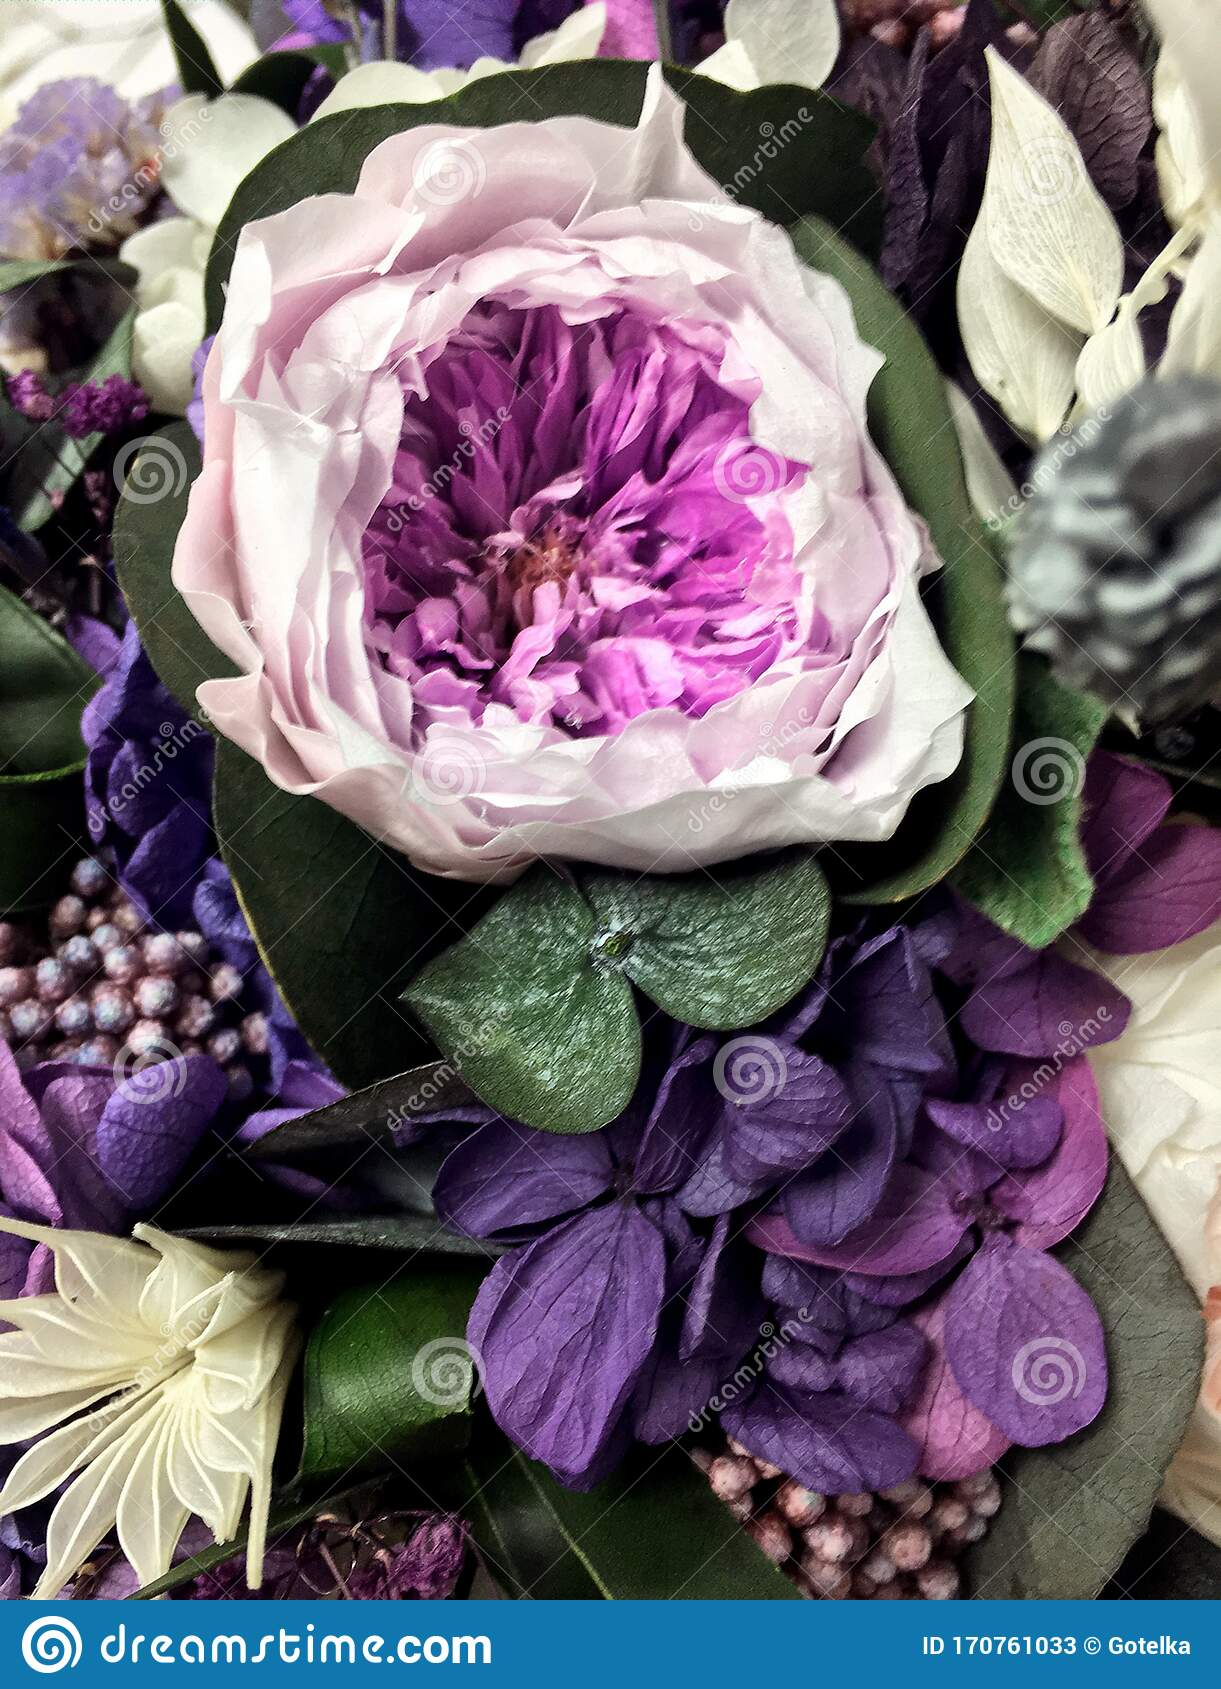 Beautiful Bouquet Of Preserved Flowers Hydrangea Eucalyptus Purple And White Peony Roses Dried Flowers Bouquet Of Spring Stock Image Image Of Leaves Flower 170761033